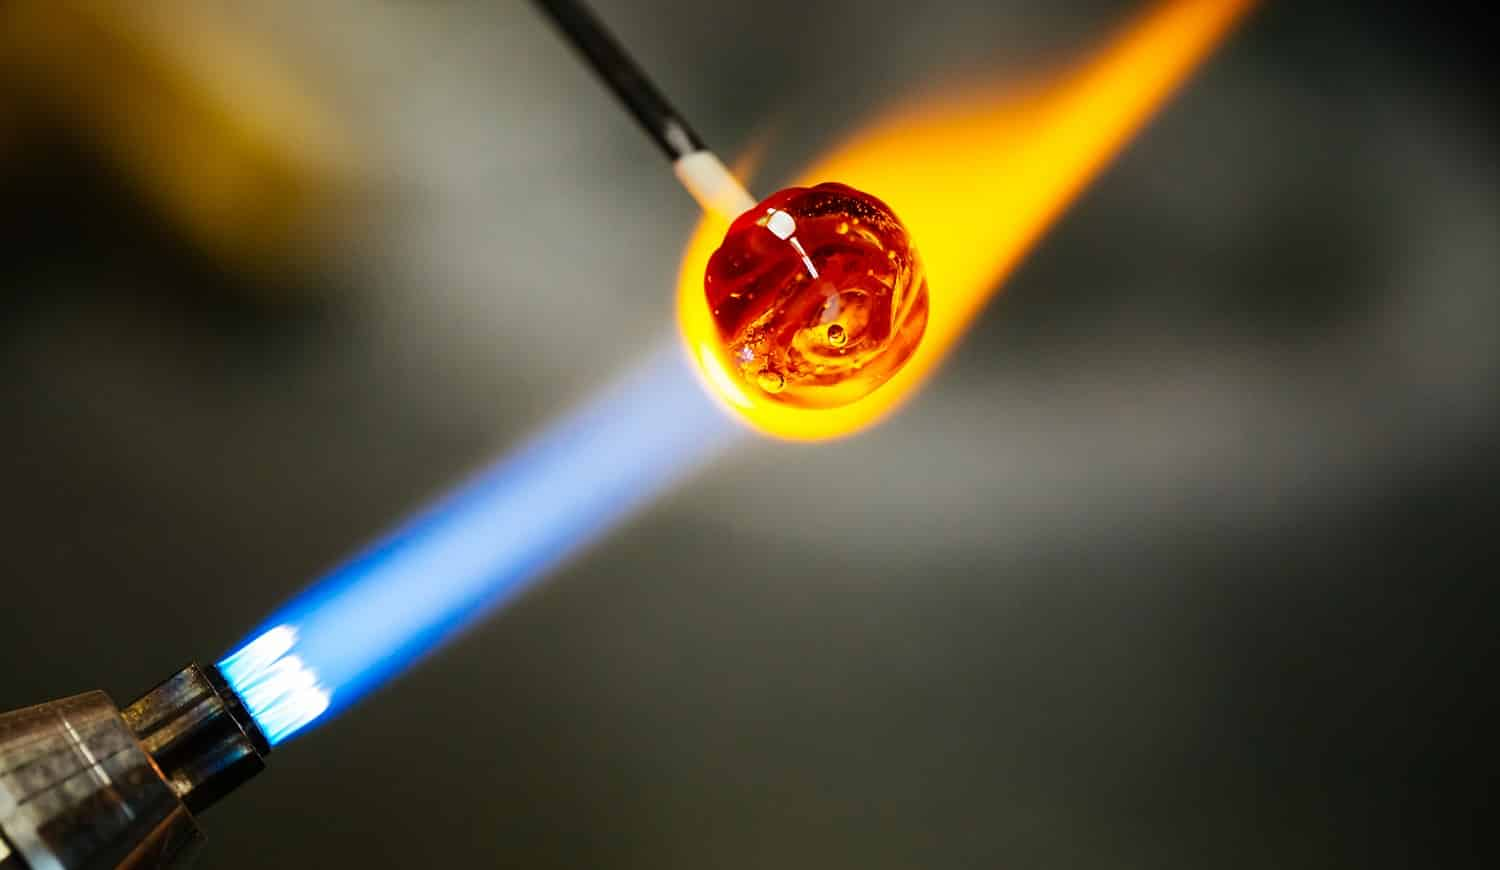 Close-up of glass bead melting in gas-burner fire, craftwork